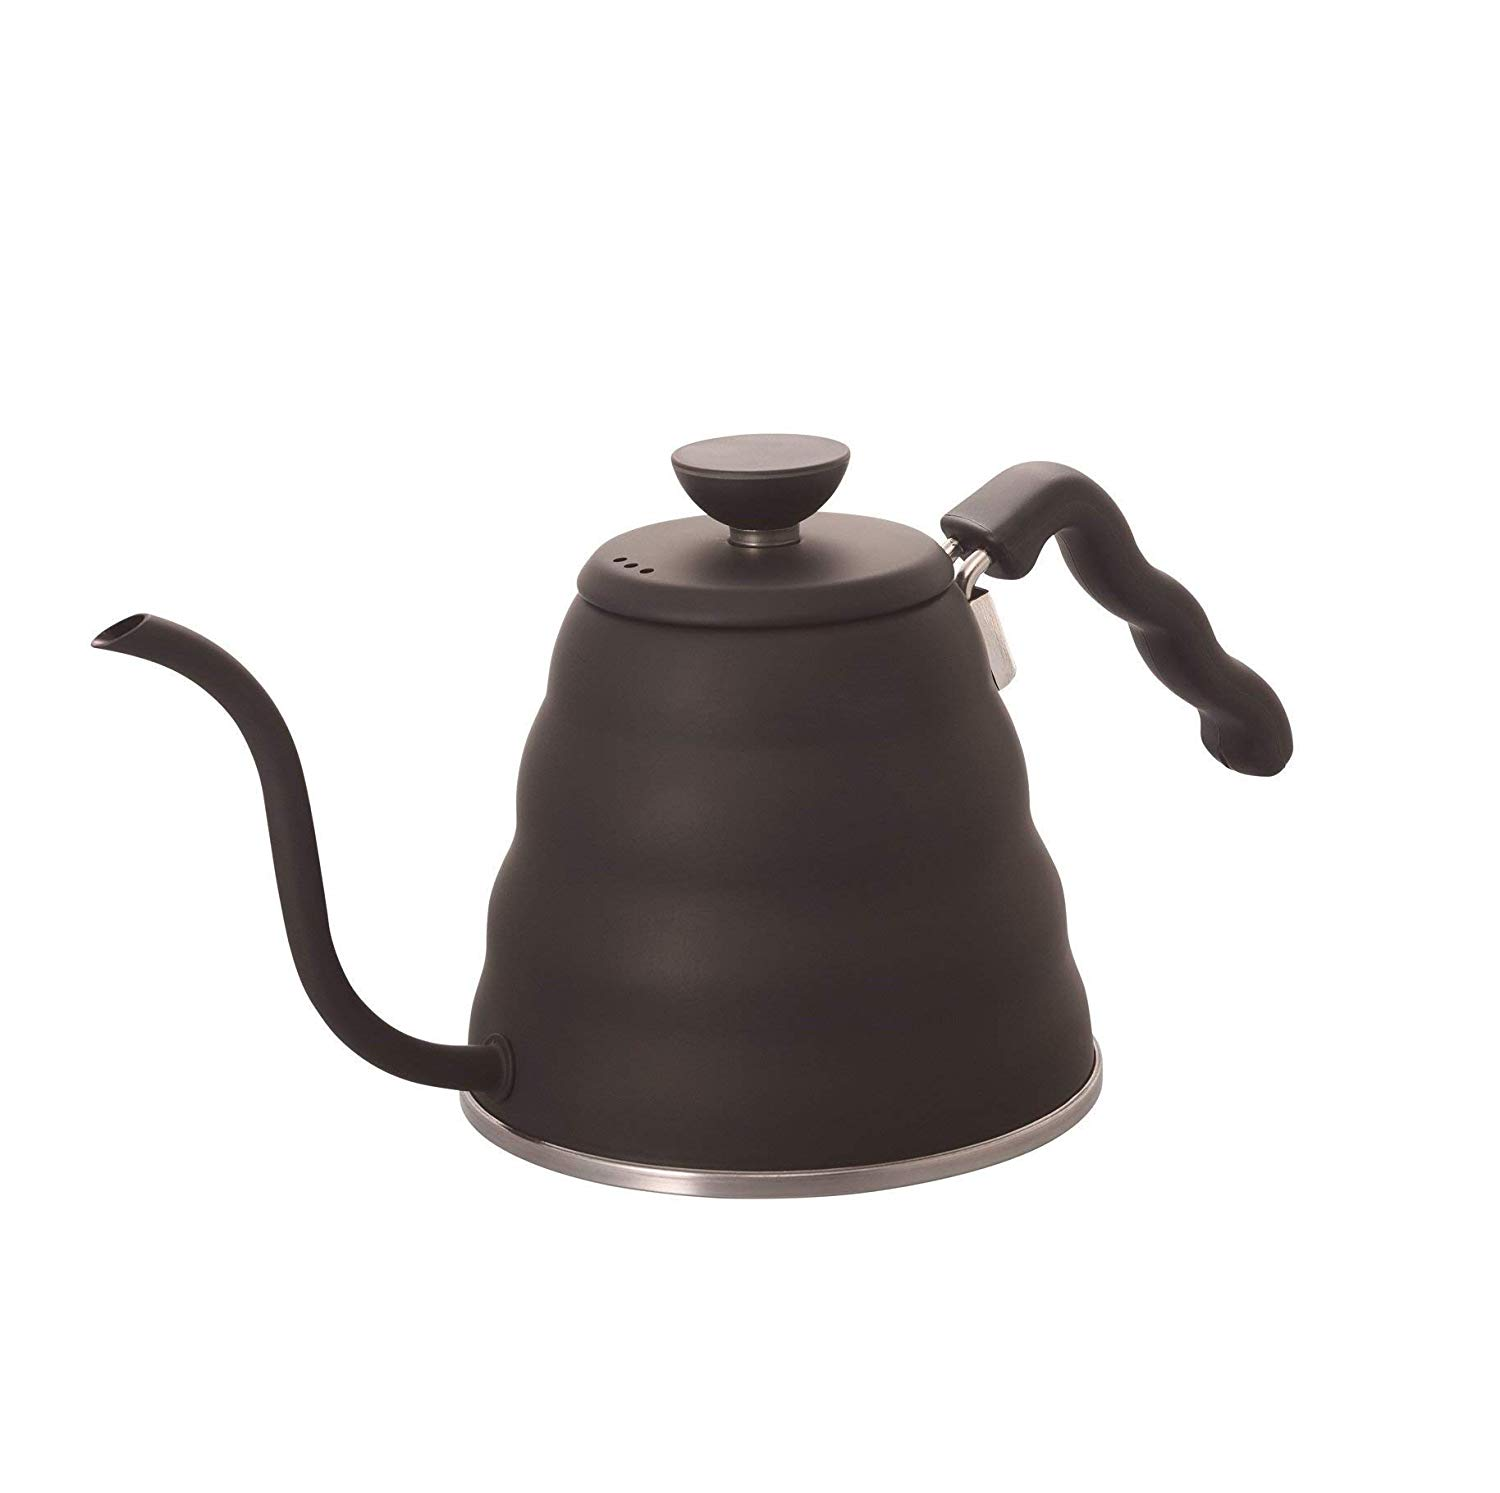 Hario V60 Buono Stainless Steel Gooseneck Coffee Kettle. Courtesy of Amazon.